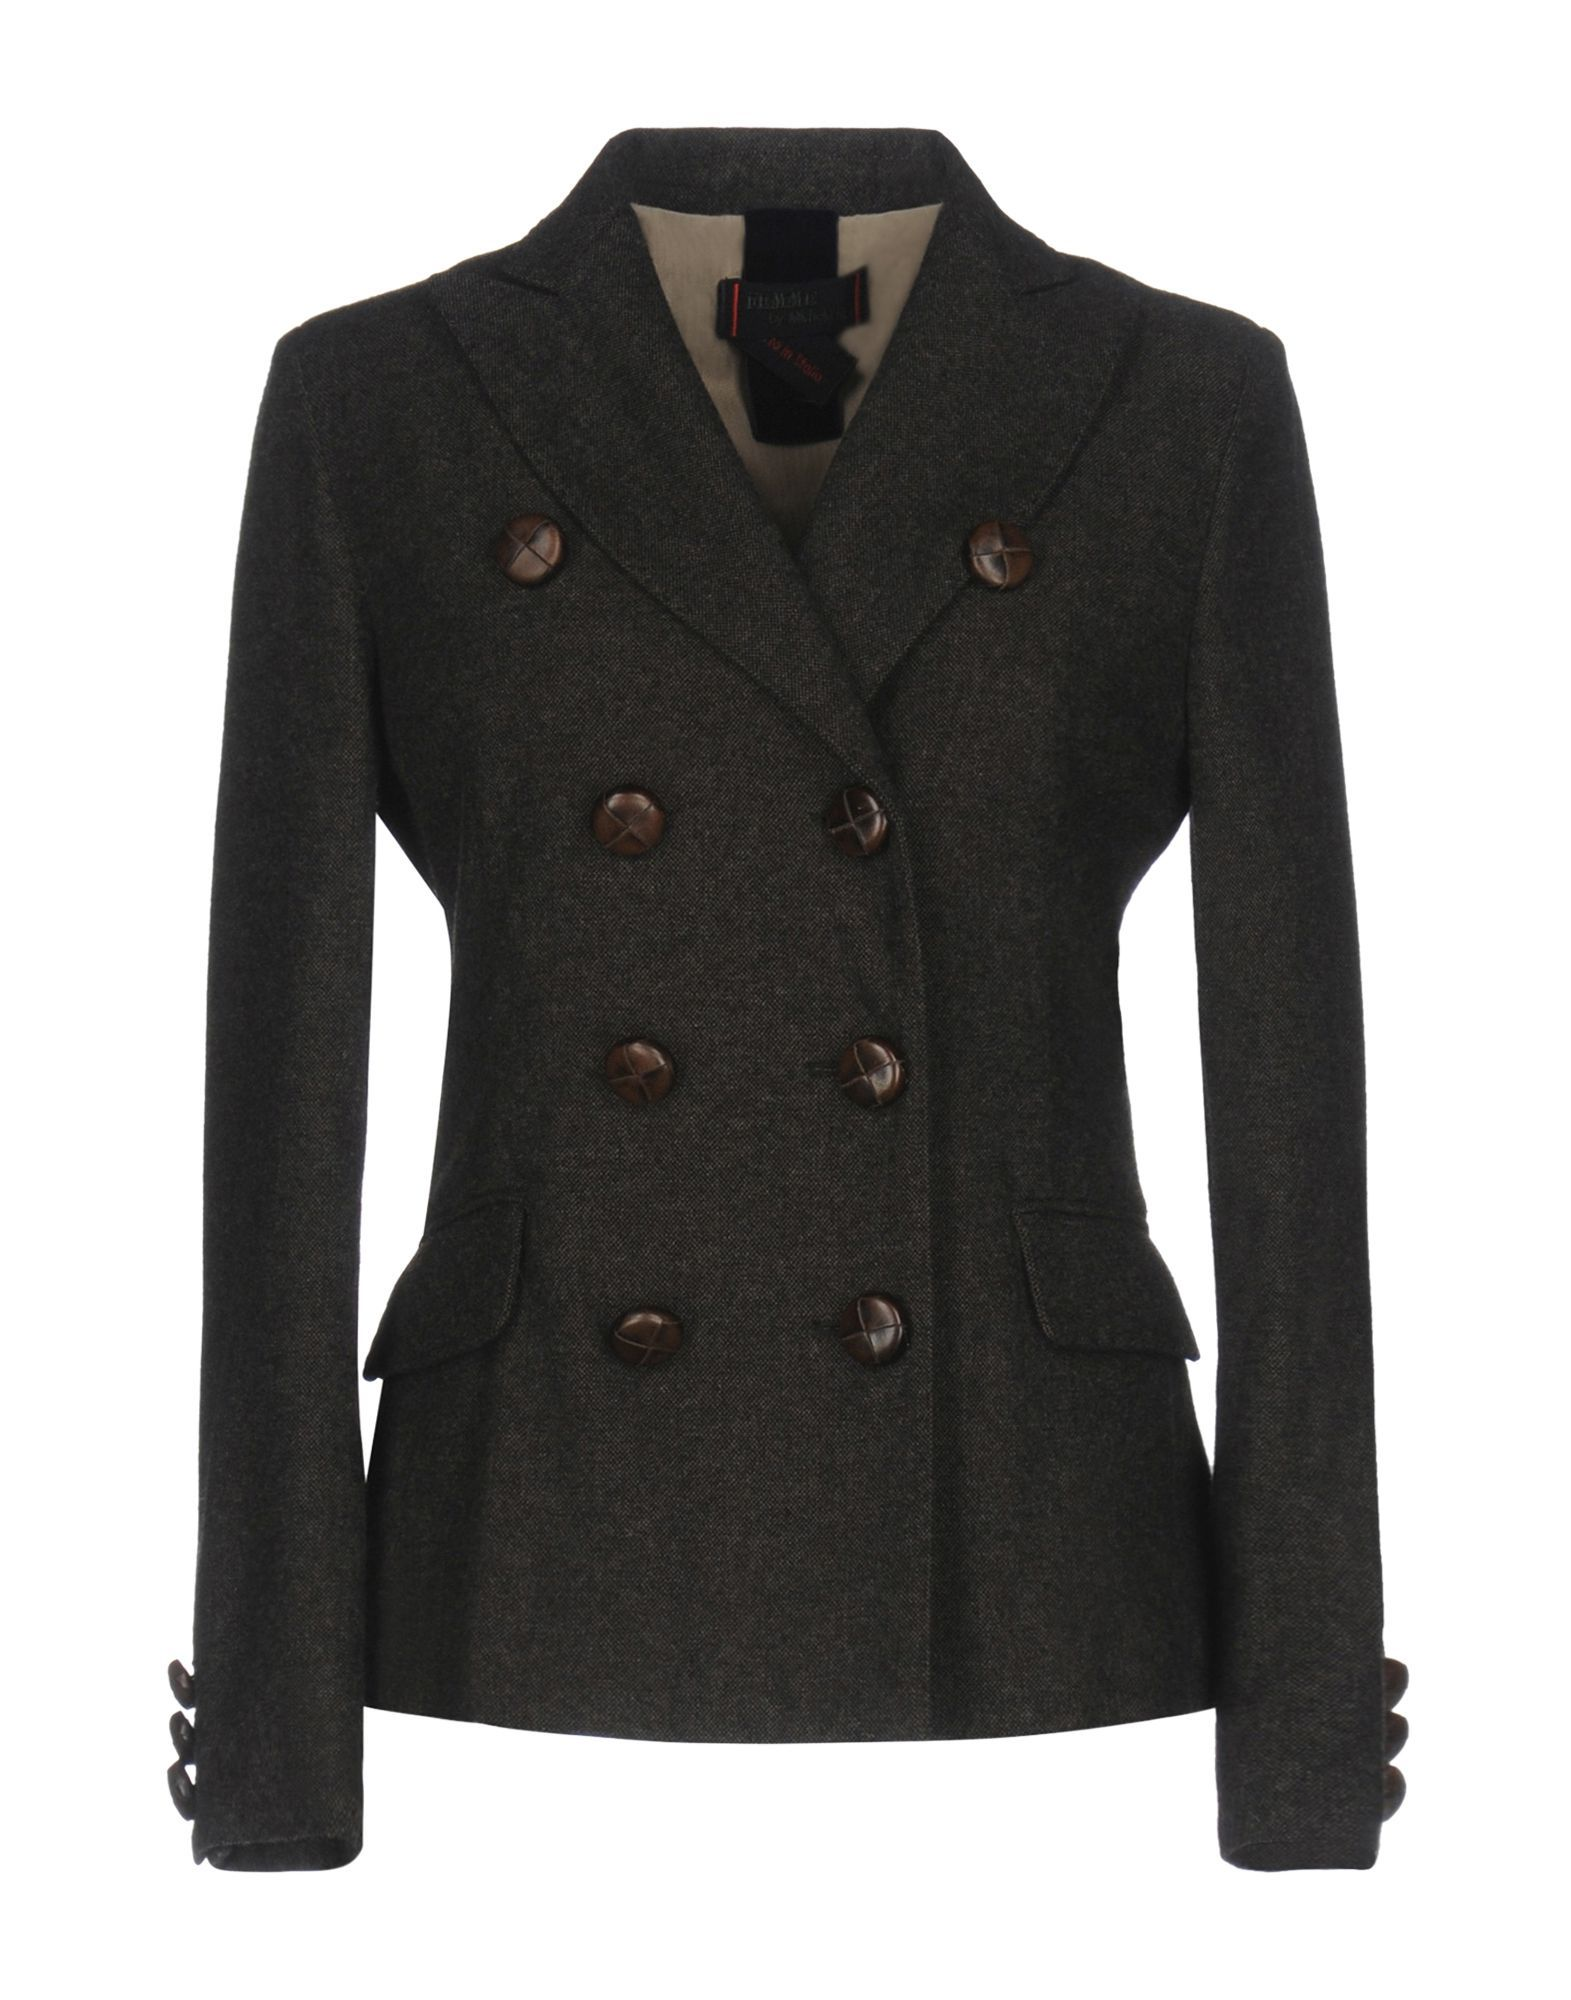 SUITS AND JACKETS Femme By Michele Rossi Dark brown Woman Wool